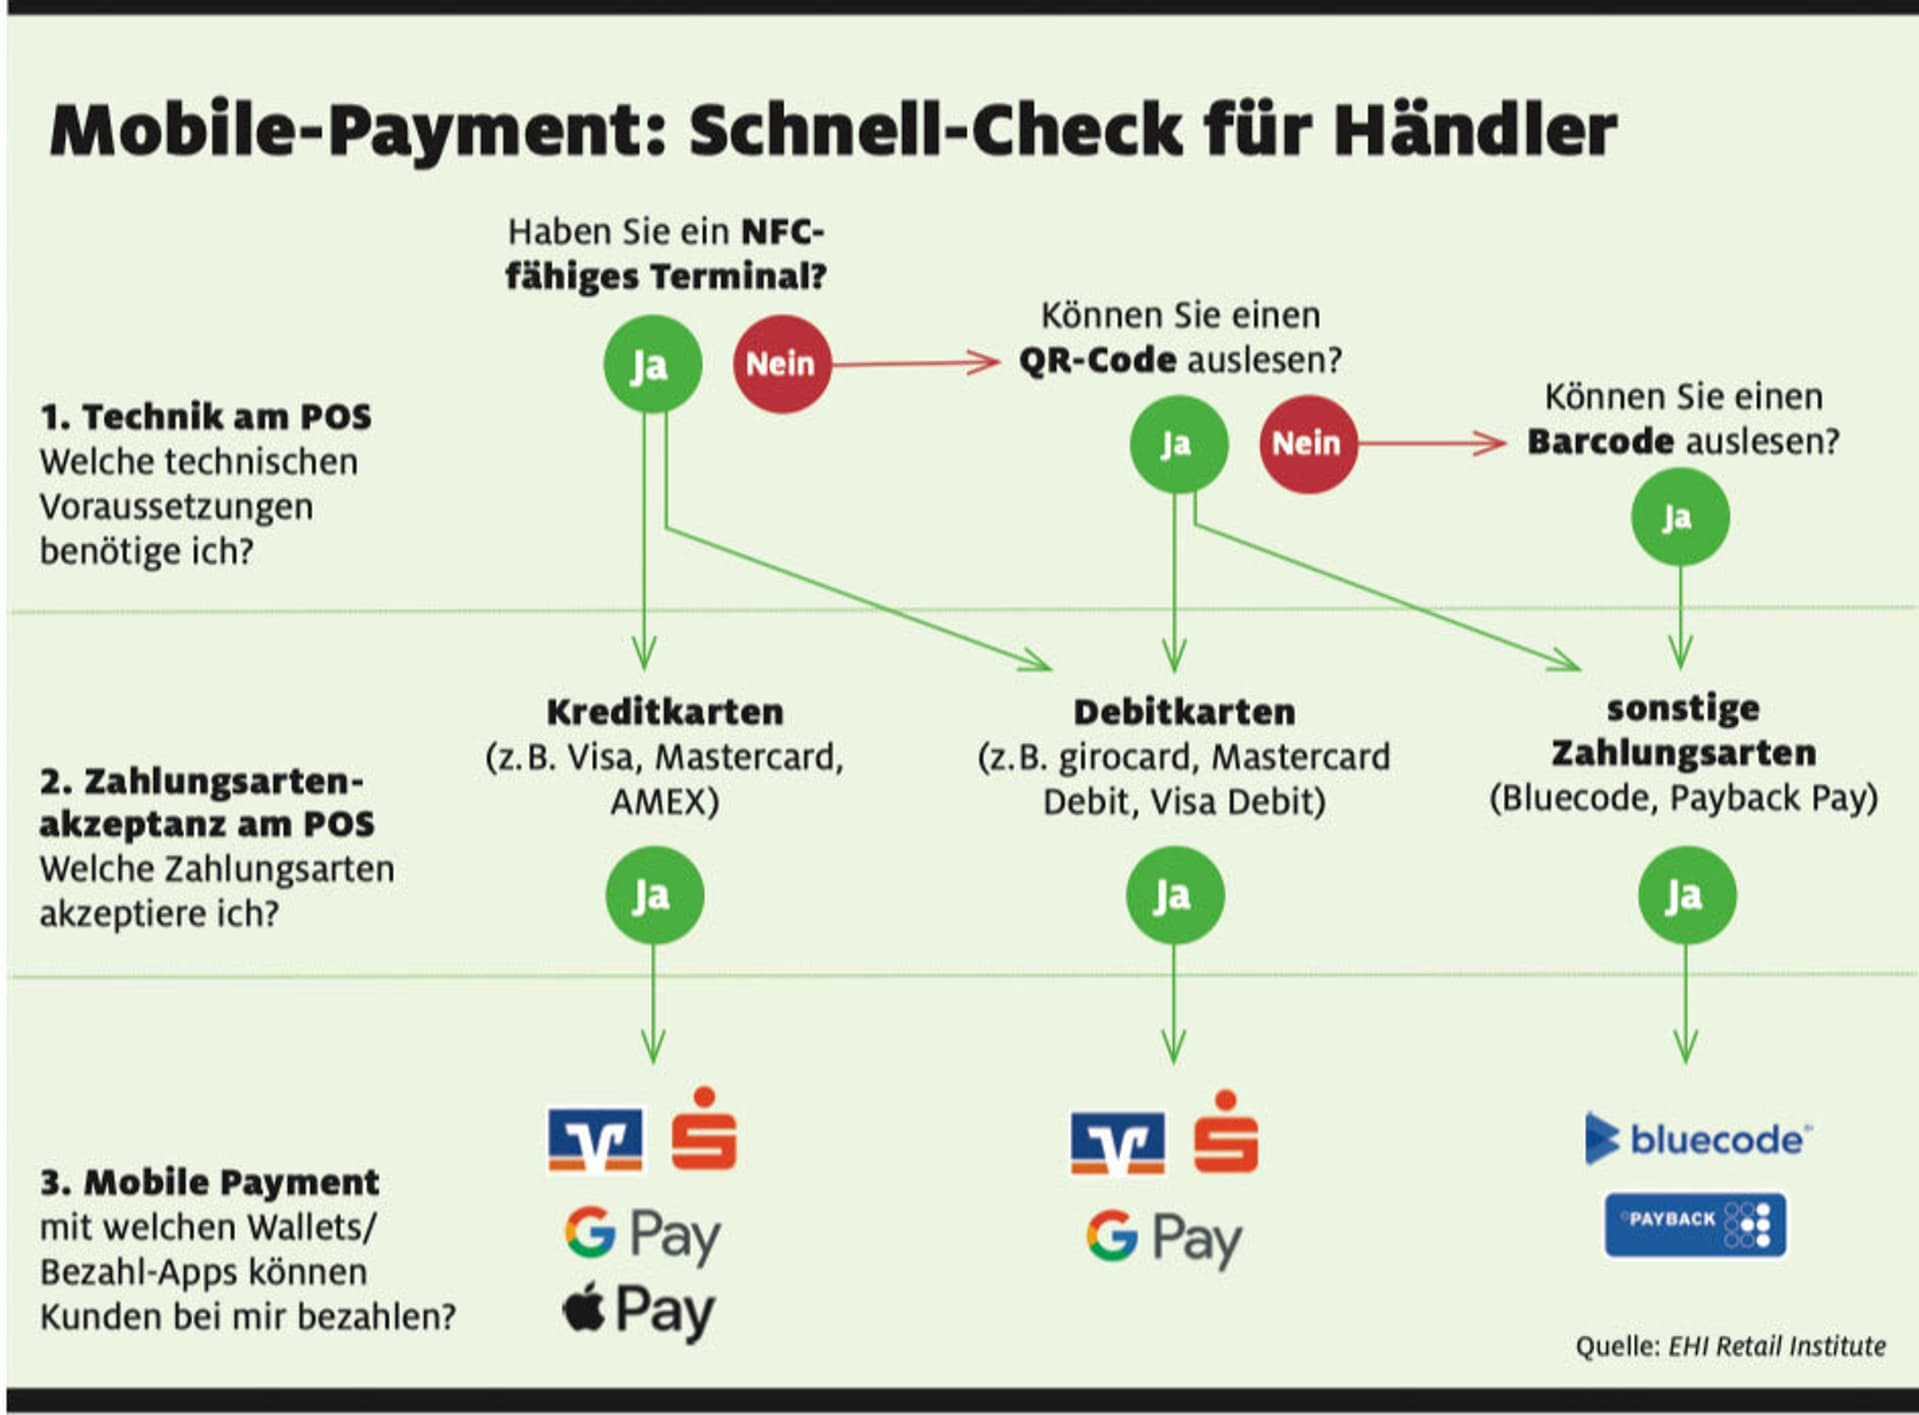 Mobile Payment Schnell-Check